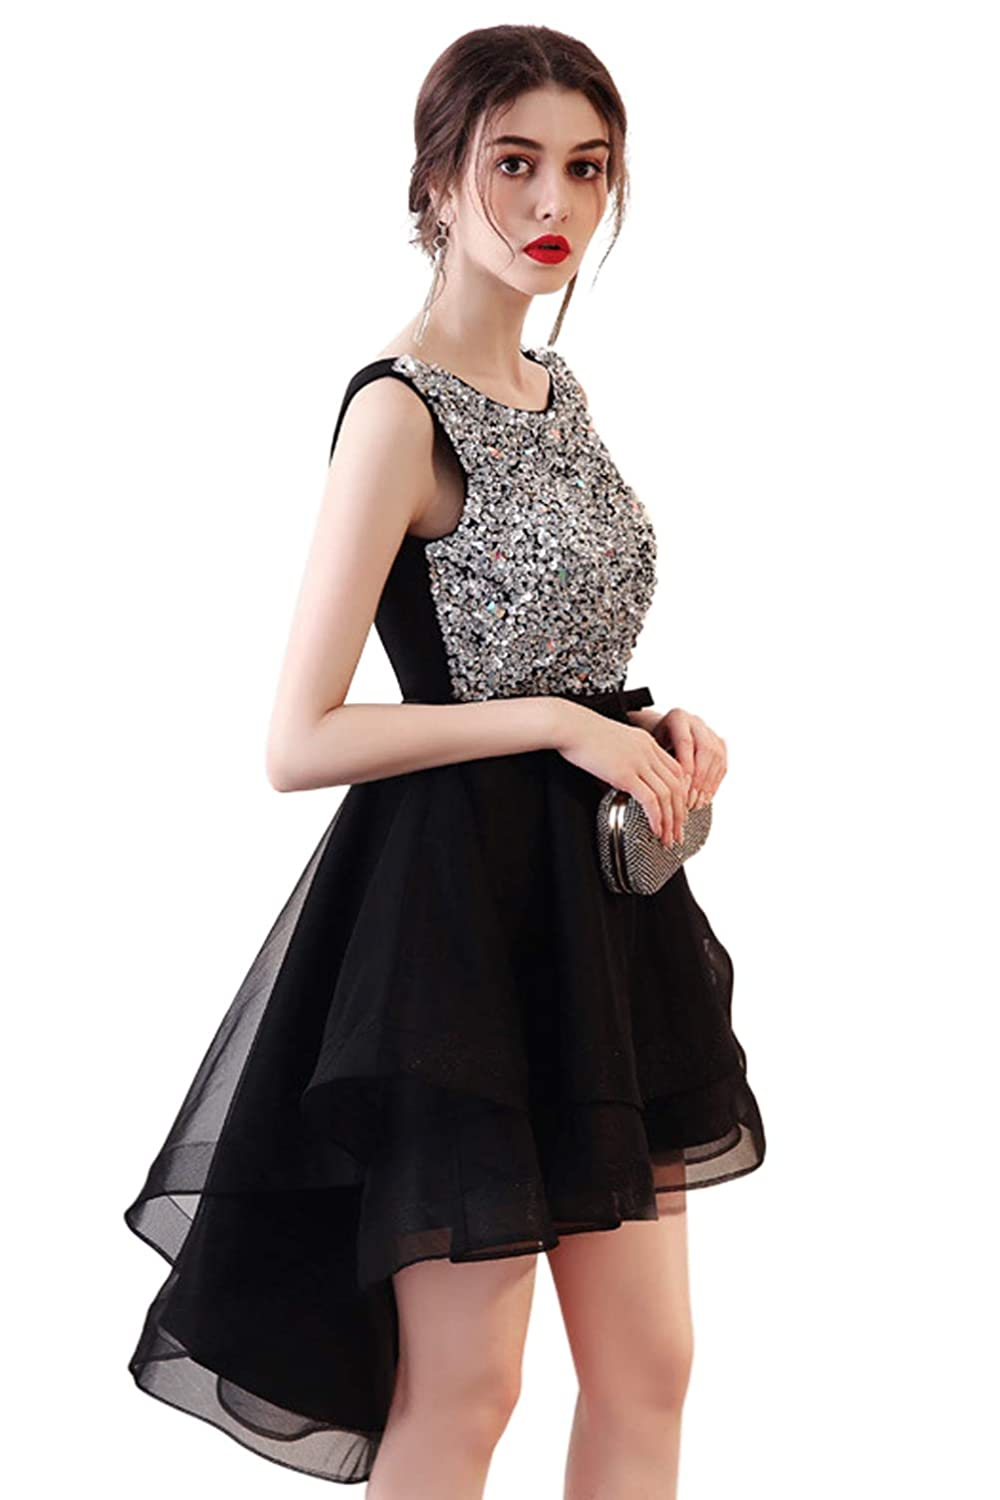 5178d35cf Beautiful Elegant Round Collar Designs,Hand-made Stitched Sequins,Hollow  Out The Back,Soft Mesh With Shining Sequins And Rhinestones,Empire Waist  Designs ...